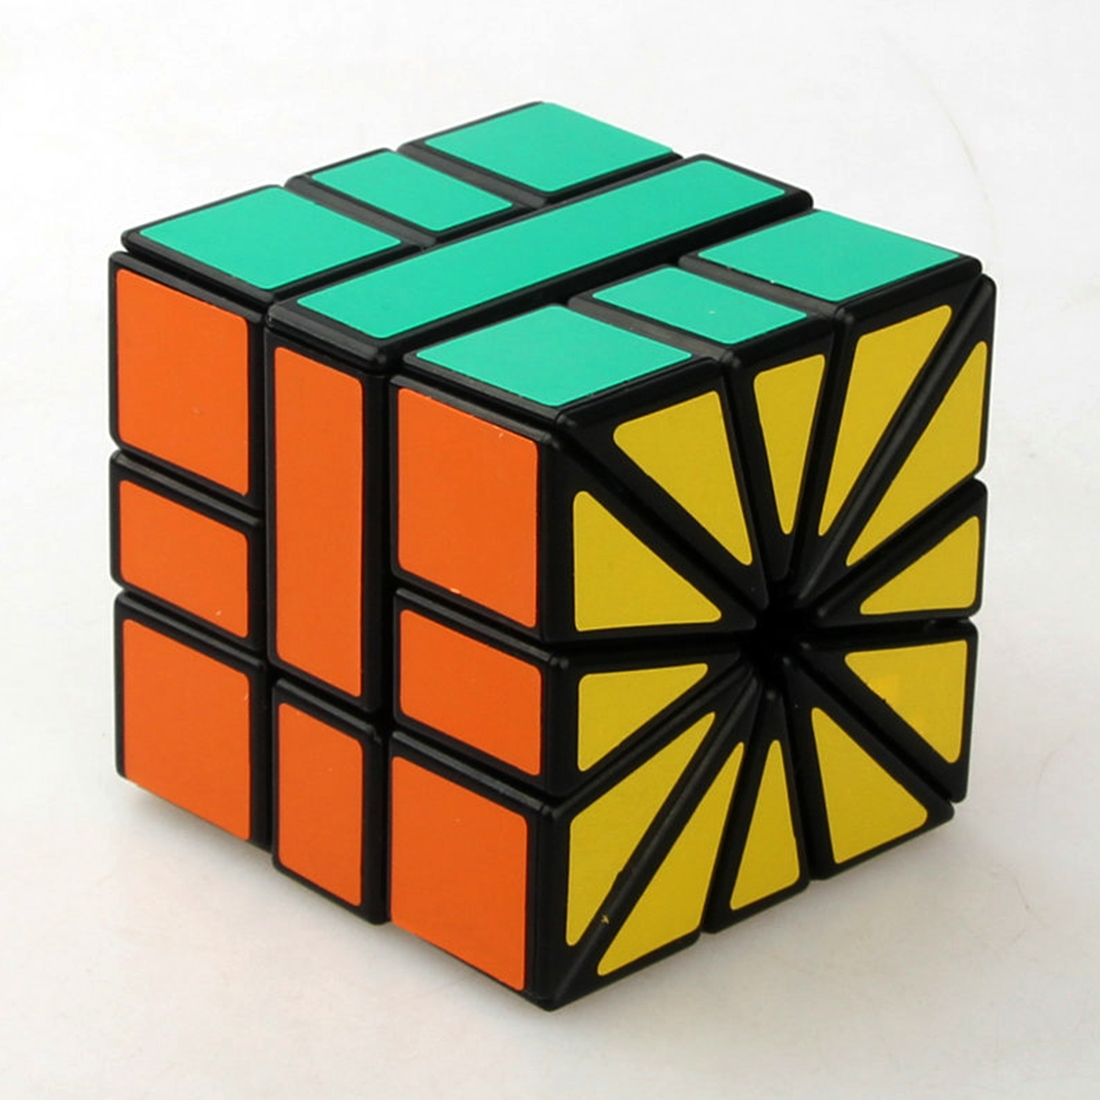 Square Ii Sq2 3x3x3 Speed Cube Sector Magic Cube Puzzle Toy - Black